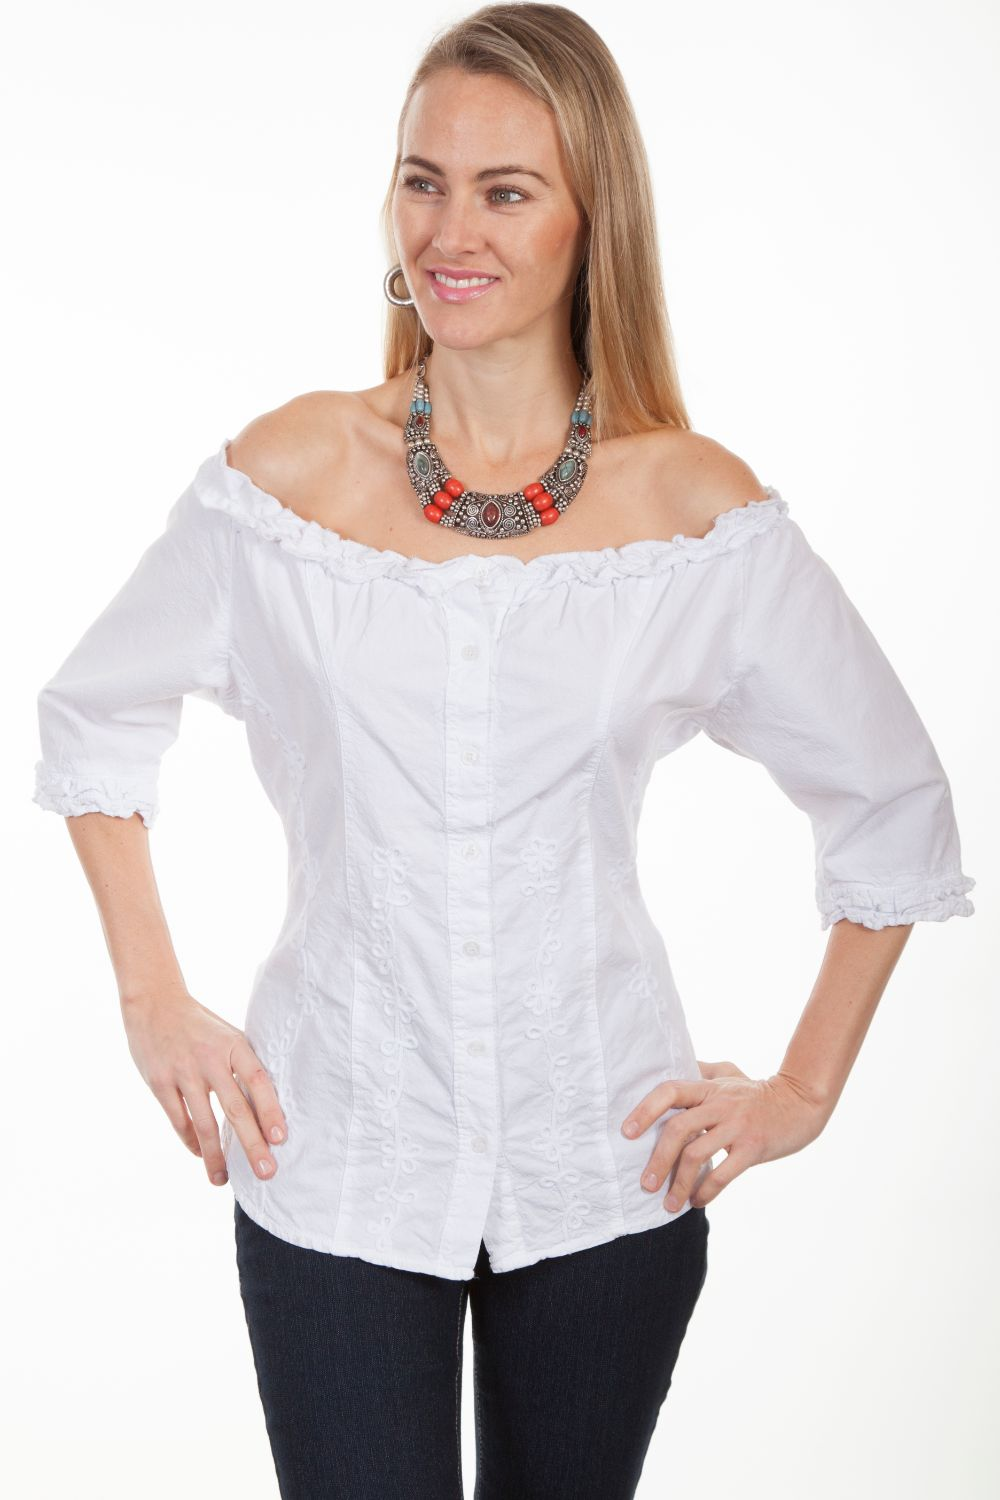 3/4 Slv Scoop Neck Button Front Blou - Psl-182 - White. (ships in 1-2 days). #F0_PSL-182_WHT